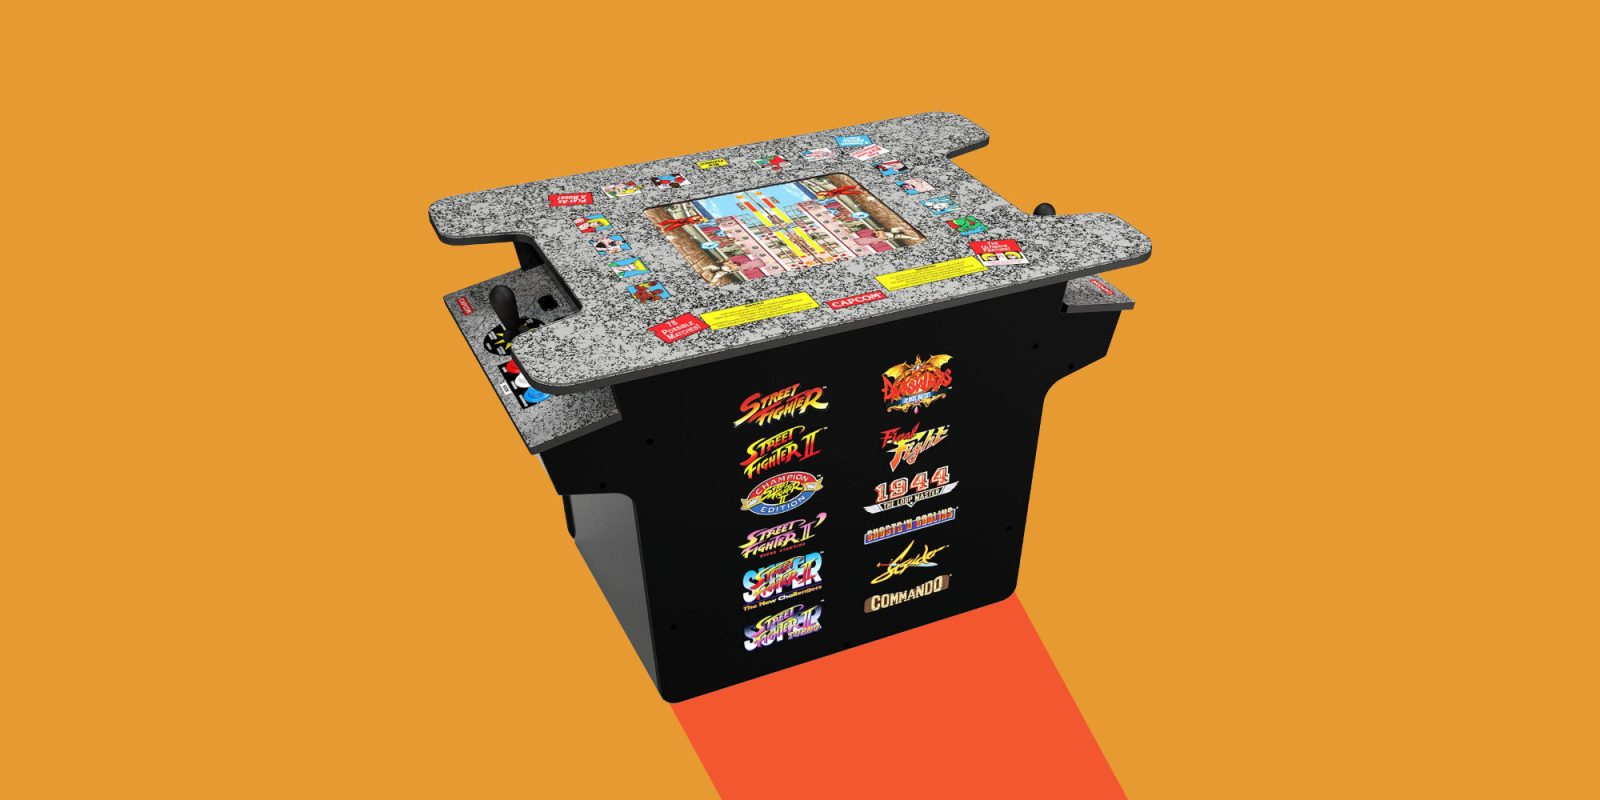 Go head-to-head w/ Arcade1Up's Street Fighter Cocktail Table: $420 (Save $80)